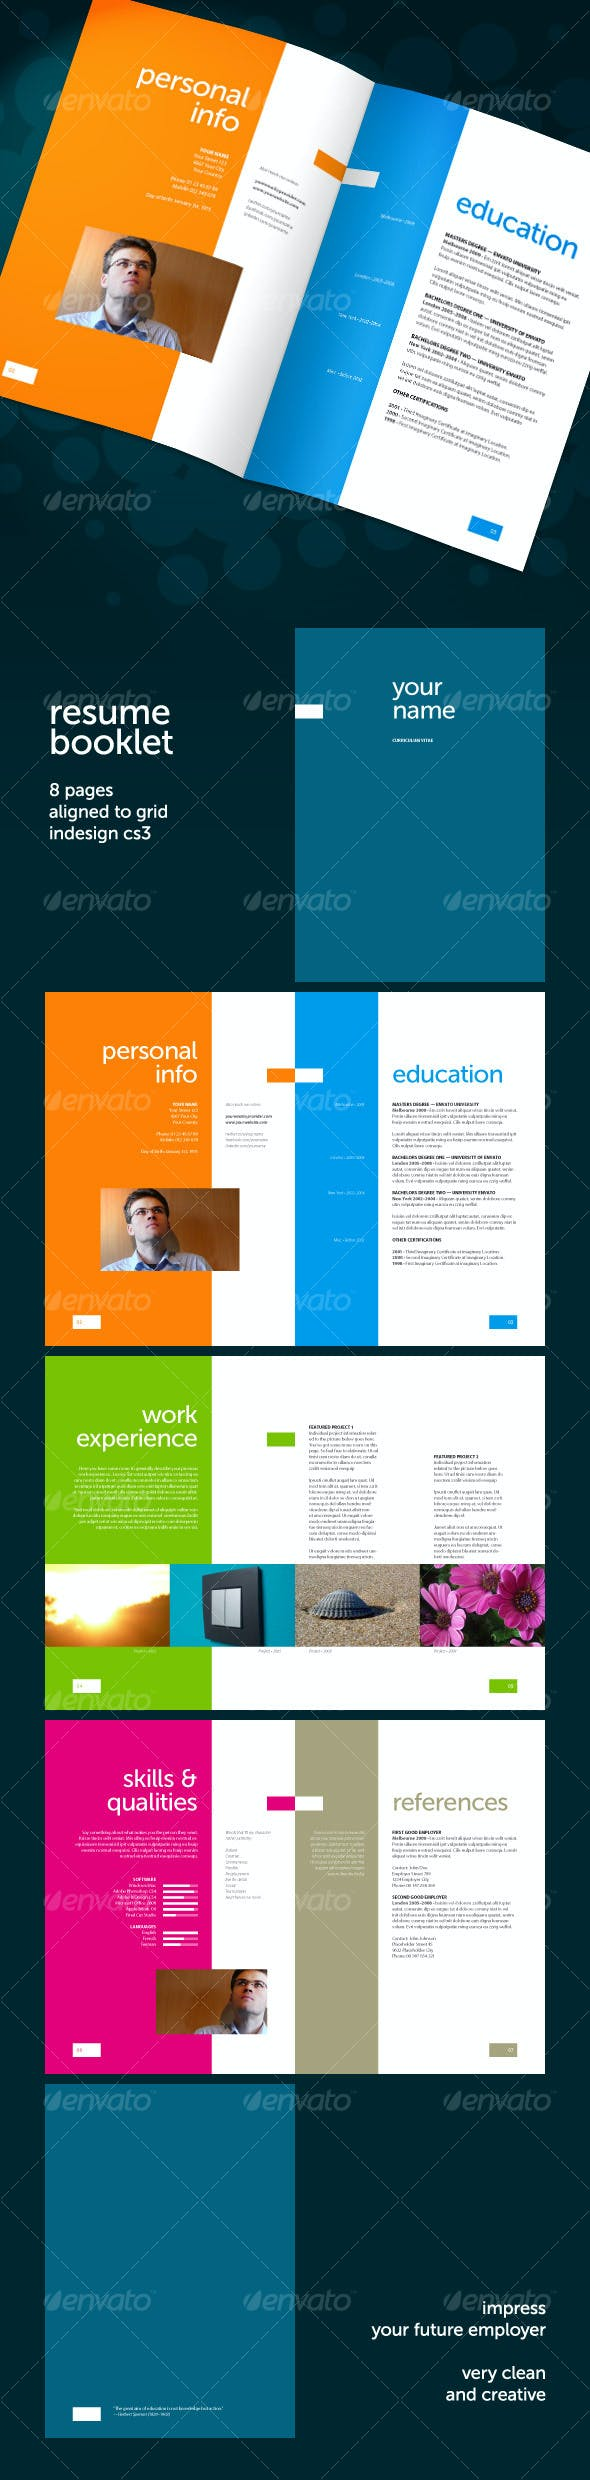 resume booklet 8 pages by geertdd graphicriver